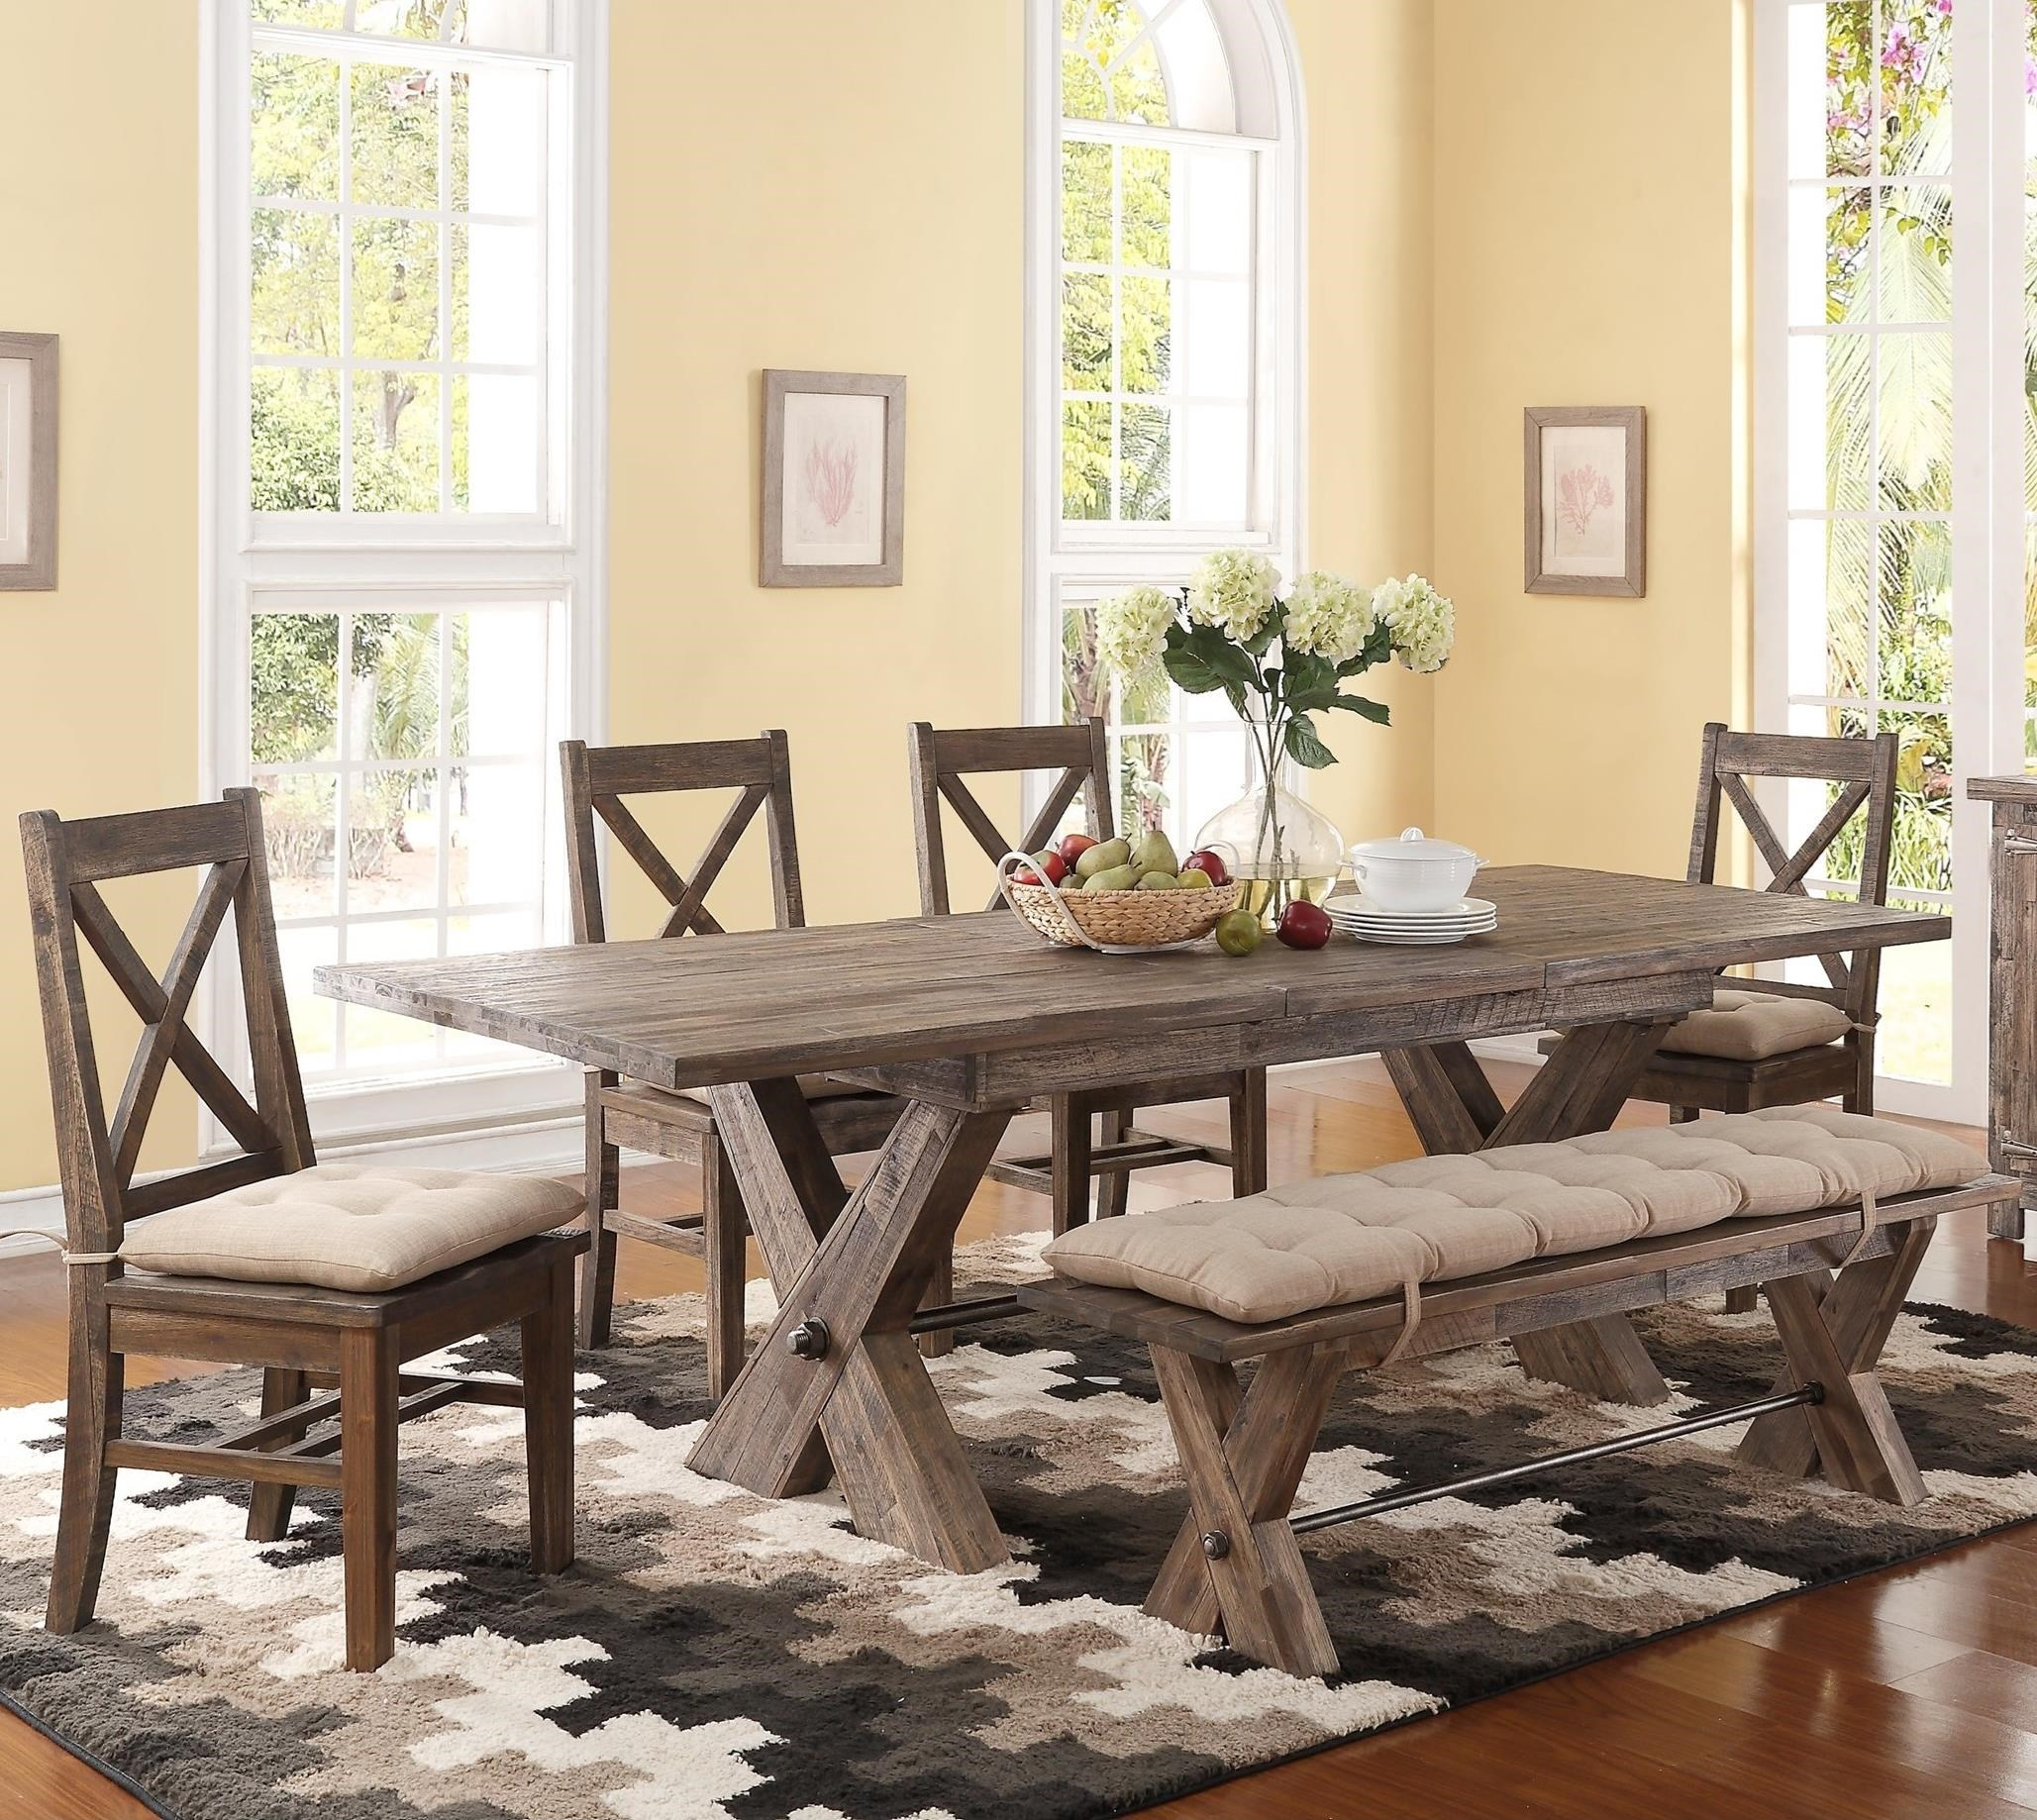 New Classic Tuscany Park6 Piece Trestle Dining Table Set ... & New Classic Tuscany Park 6 Piece Trestle Dining Table and Cushioned ...